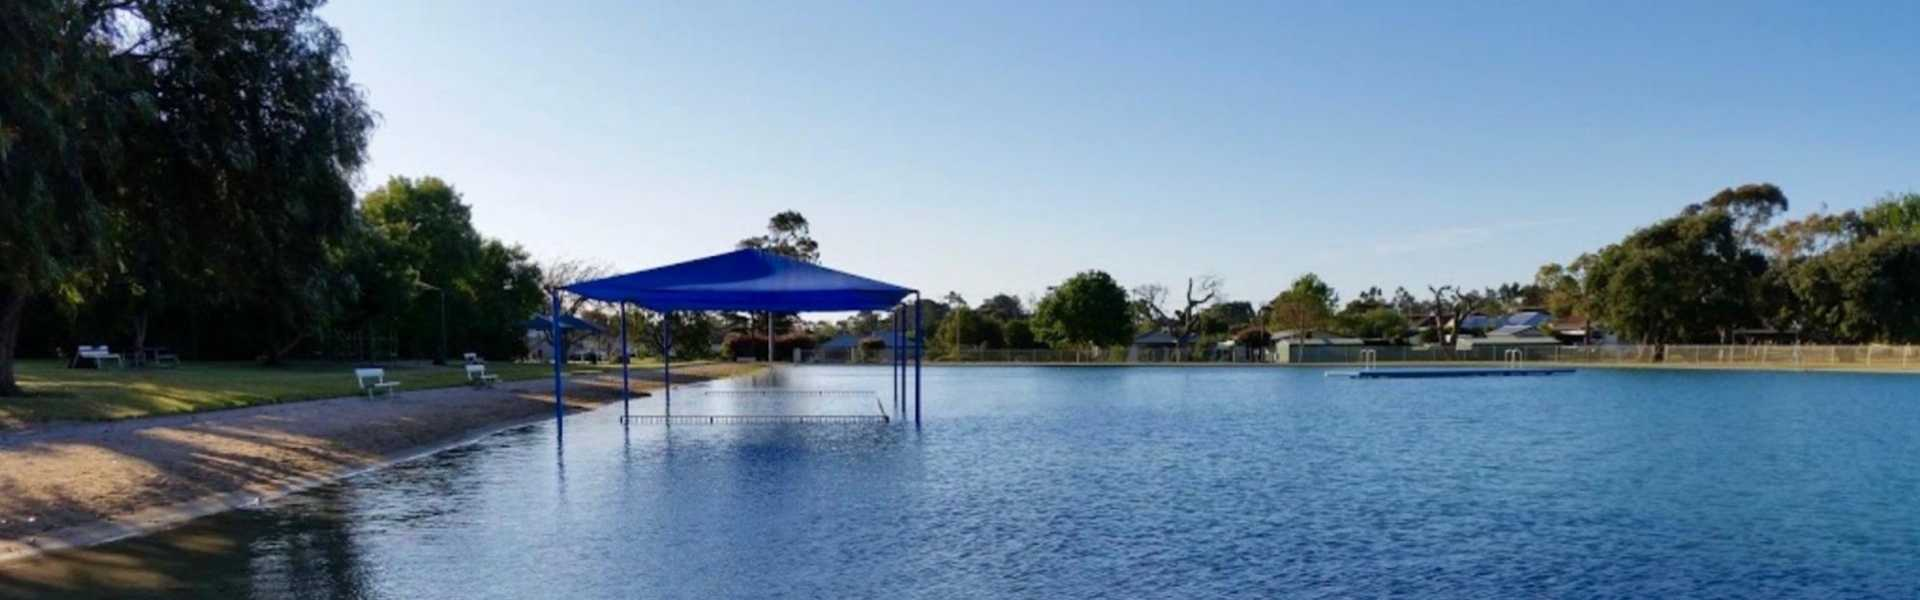 Kui Parks, Millicent Lakeside Caravan Park, Swimming Lake